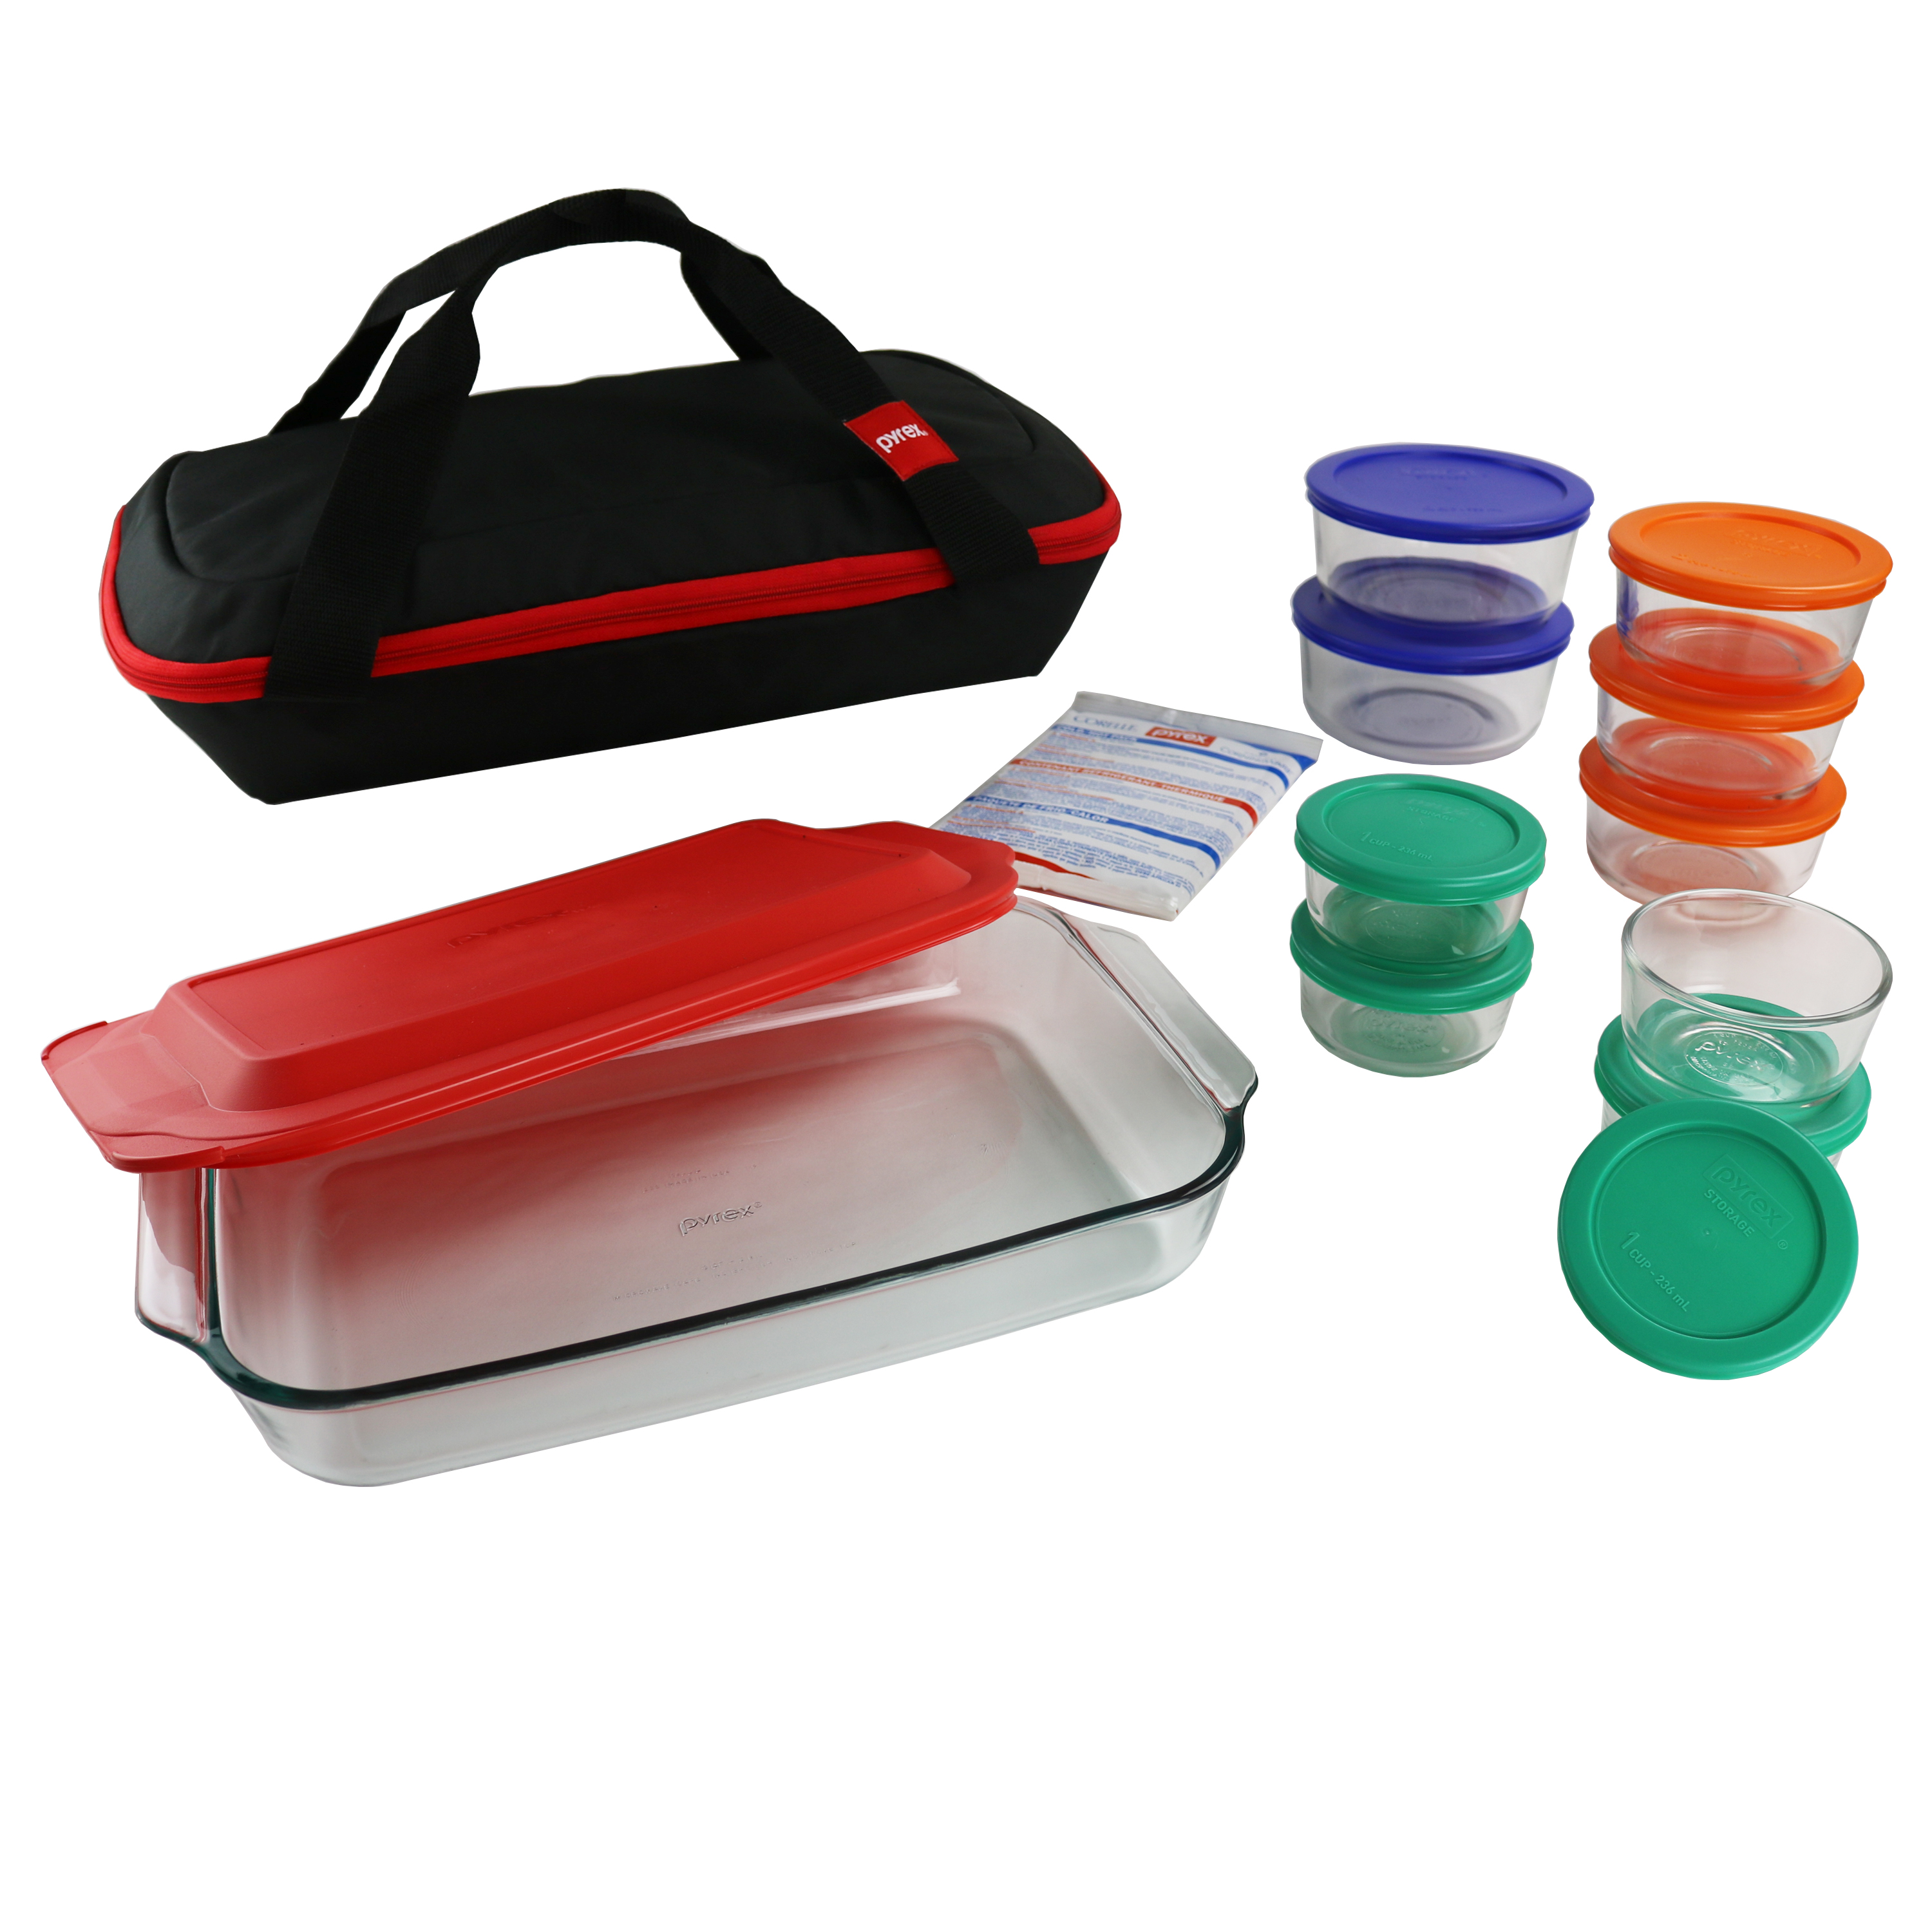 Pyrex Pyrex 22-Piece Portable Set, Bakeware, Storage, Green, Blue, Orange, Red